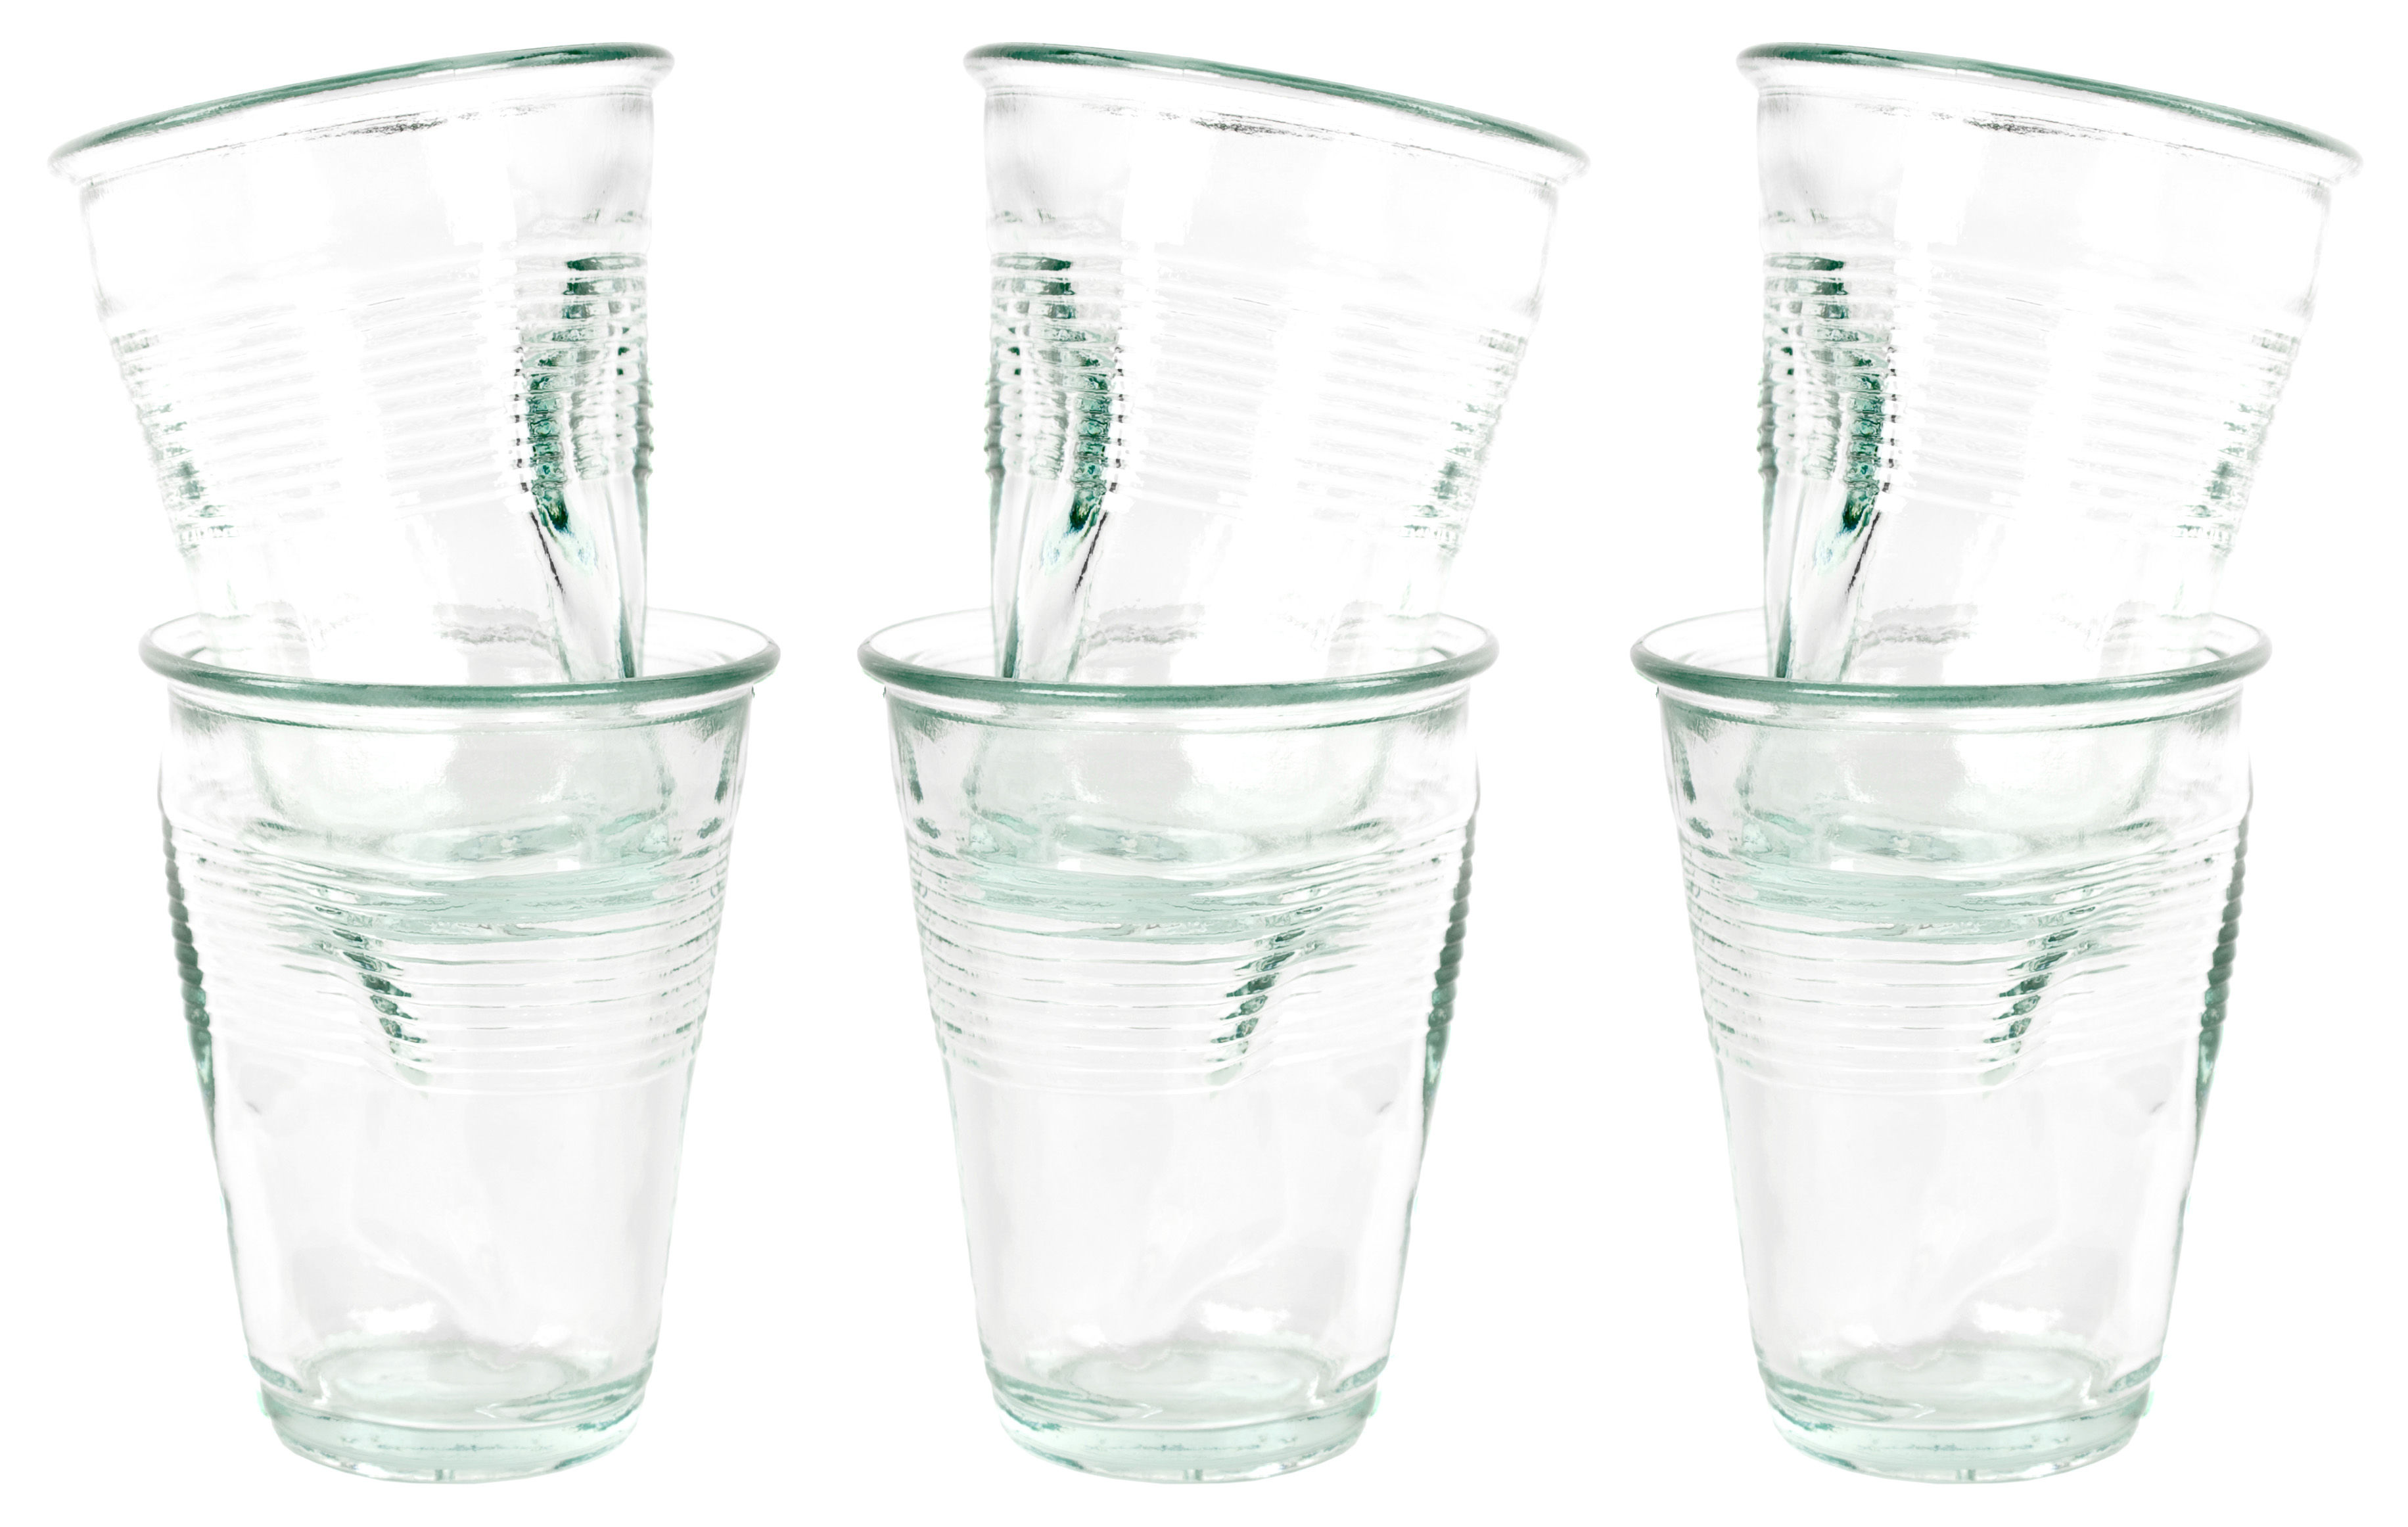 Tableware - Wine Glasses & Glassware - Crushed glass Cup - / Pack of 6 by Rob Brandt - Pop Corn - Transparent - Glass